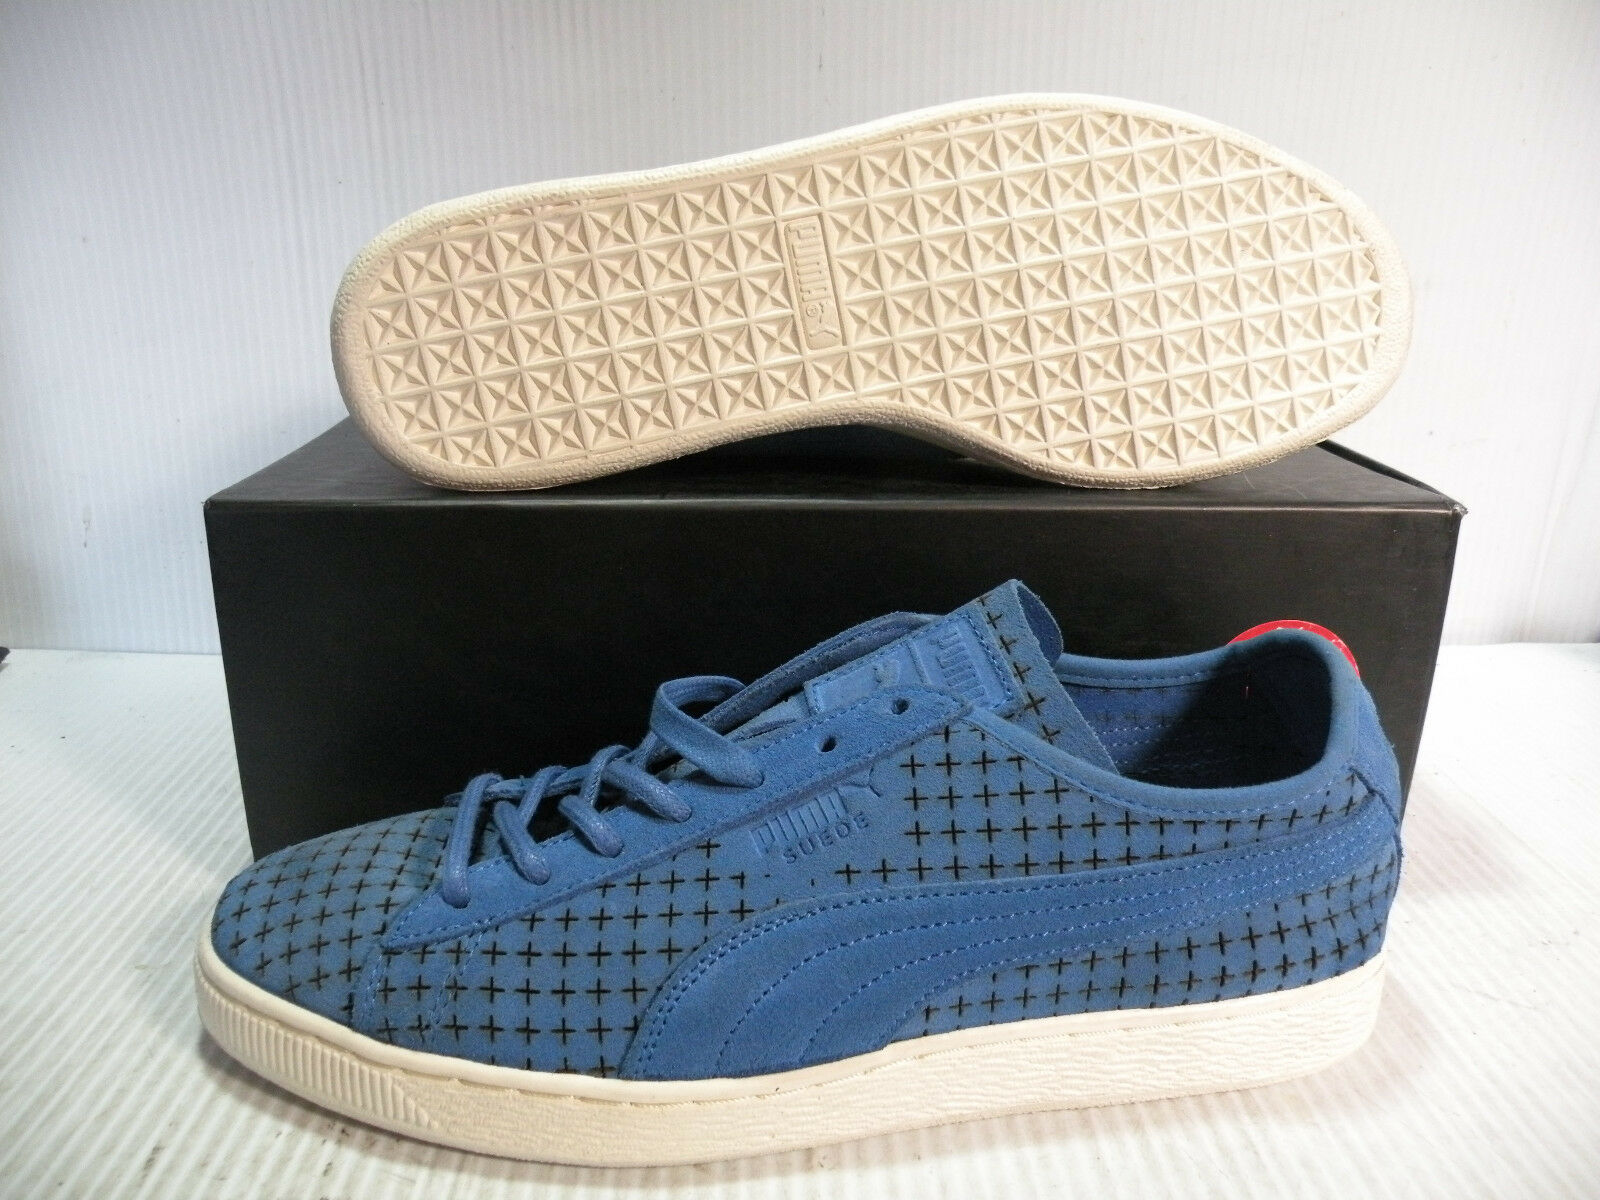 PUMA SUEDE COURTSIDE PERF LOW TENNIS MEN SHOES CAMPANULA 358441-05 SIZE 9.5 NEW